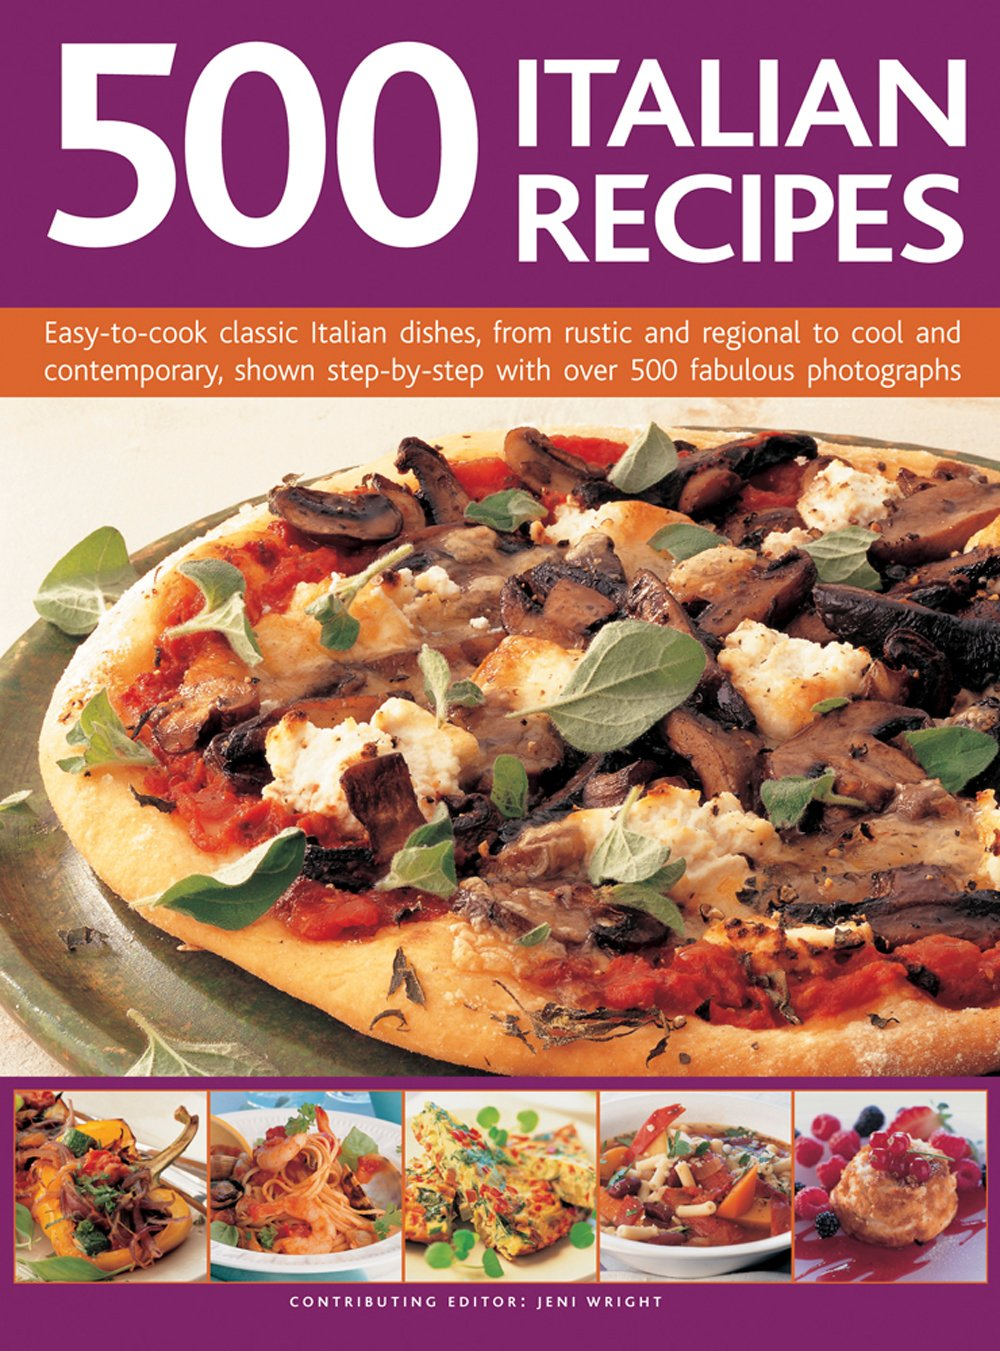 Download 500 Italian Recipes: Easy-To-Cook Classic Italian Dishes, From Rustic And Regional To Cool And Contemporary, Shown Step-By-Step With Over 500 Fabulous Photographs pdf epub